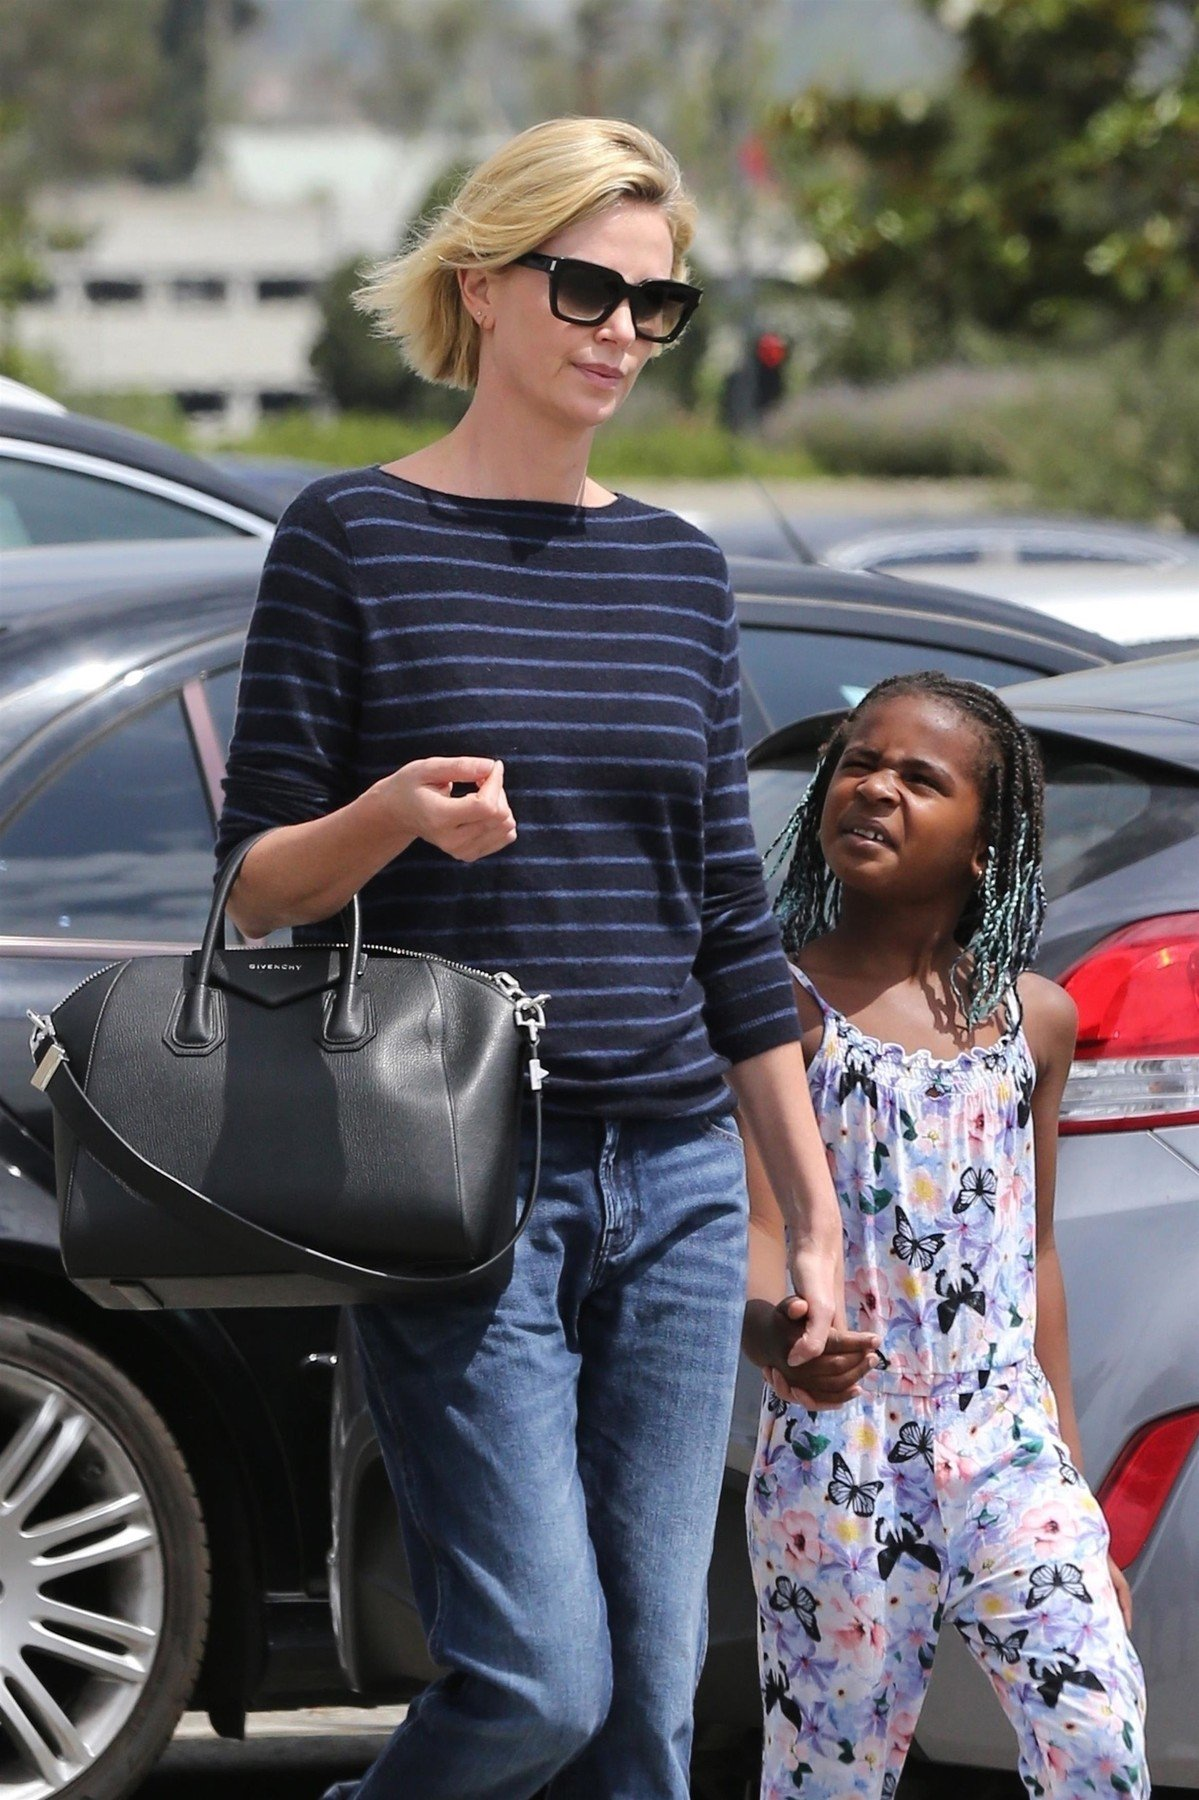 Los Angeles, CA  - *EXCLUSIVE*  - Actress Charlize Theron is seen visiting the Federal Building in Los Angeles with her son Jackson. Charlize was keeping things casual in a blue sweater and blue jeans during the family outing.  Pictured: Charlize Theron, Jackson Theron    *UK Clients - Pictures Containing Children Please Pixelate Face Prior To Publication*, Image: 377456853, License: Rights-managed, Restrictions: , Model Release: no, Credit line: Profimedia, Backgrid USA